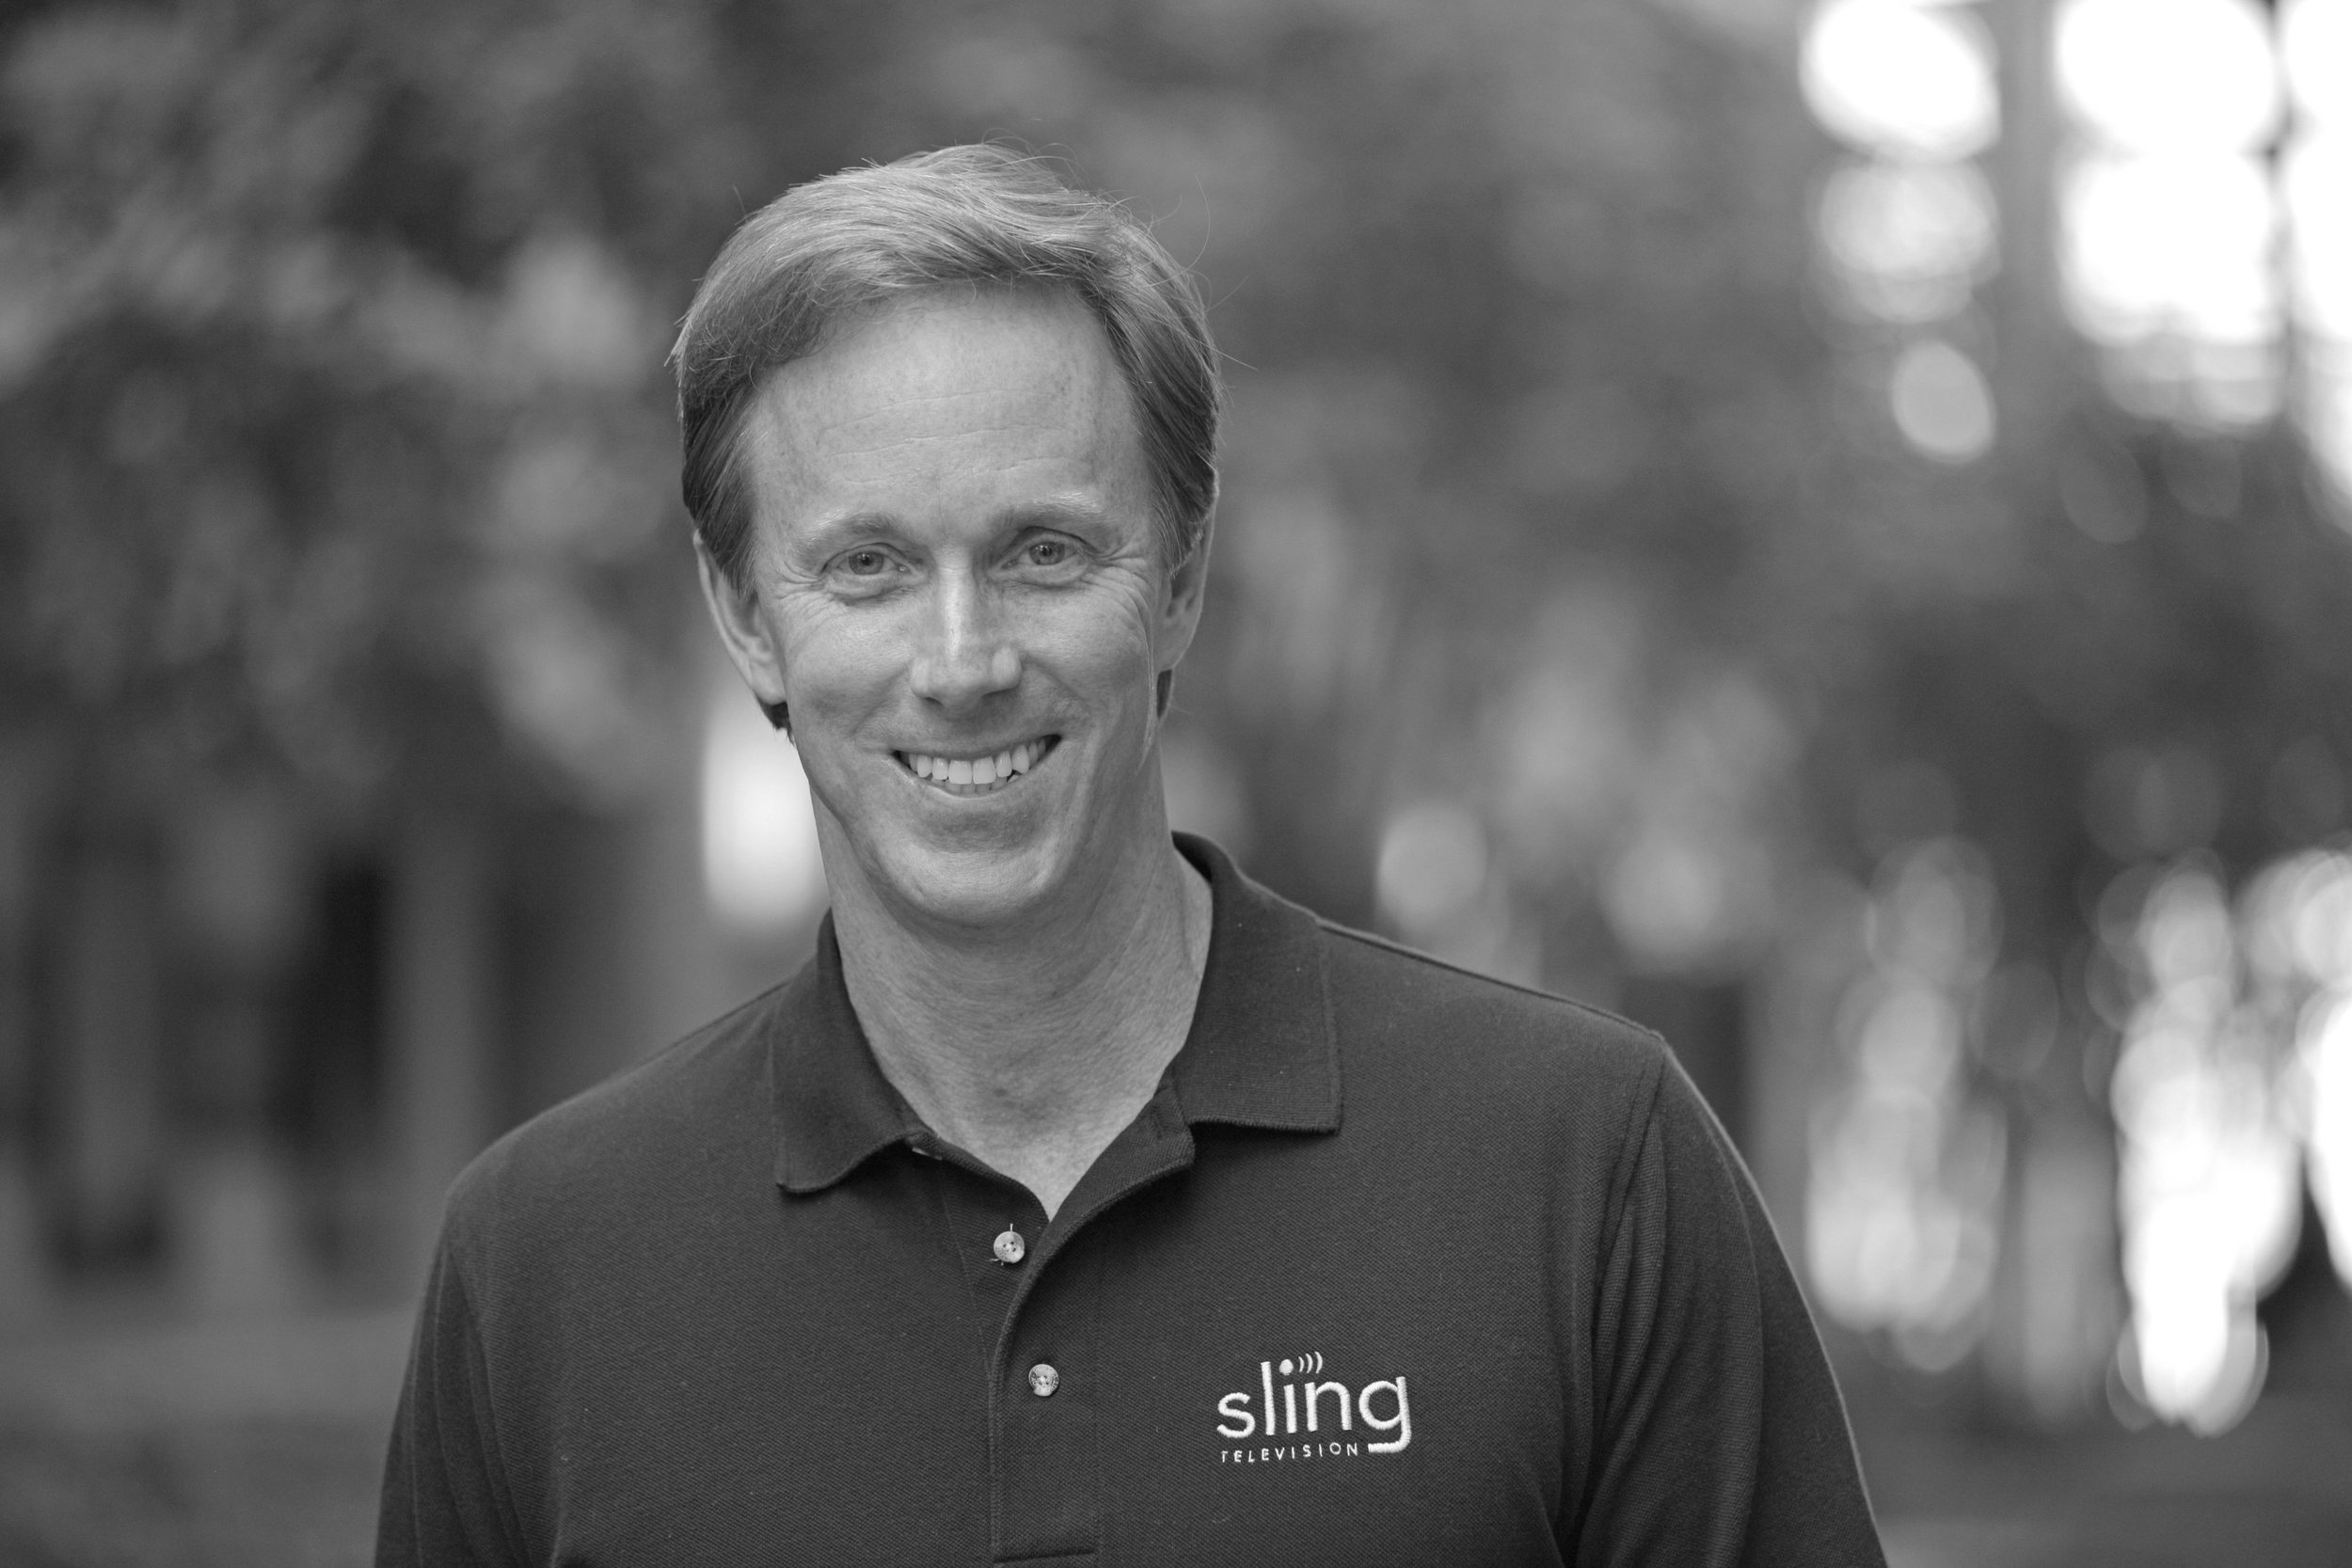 Roger Lynch, Sling TV